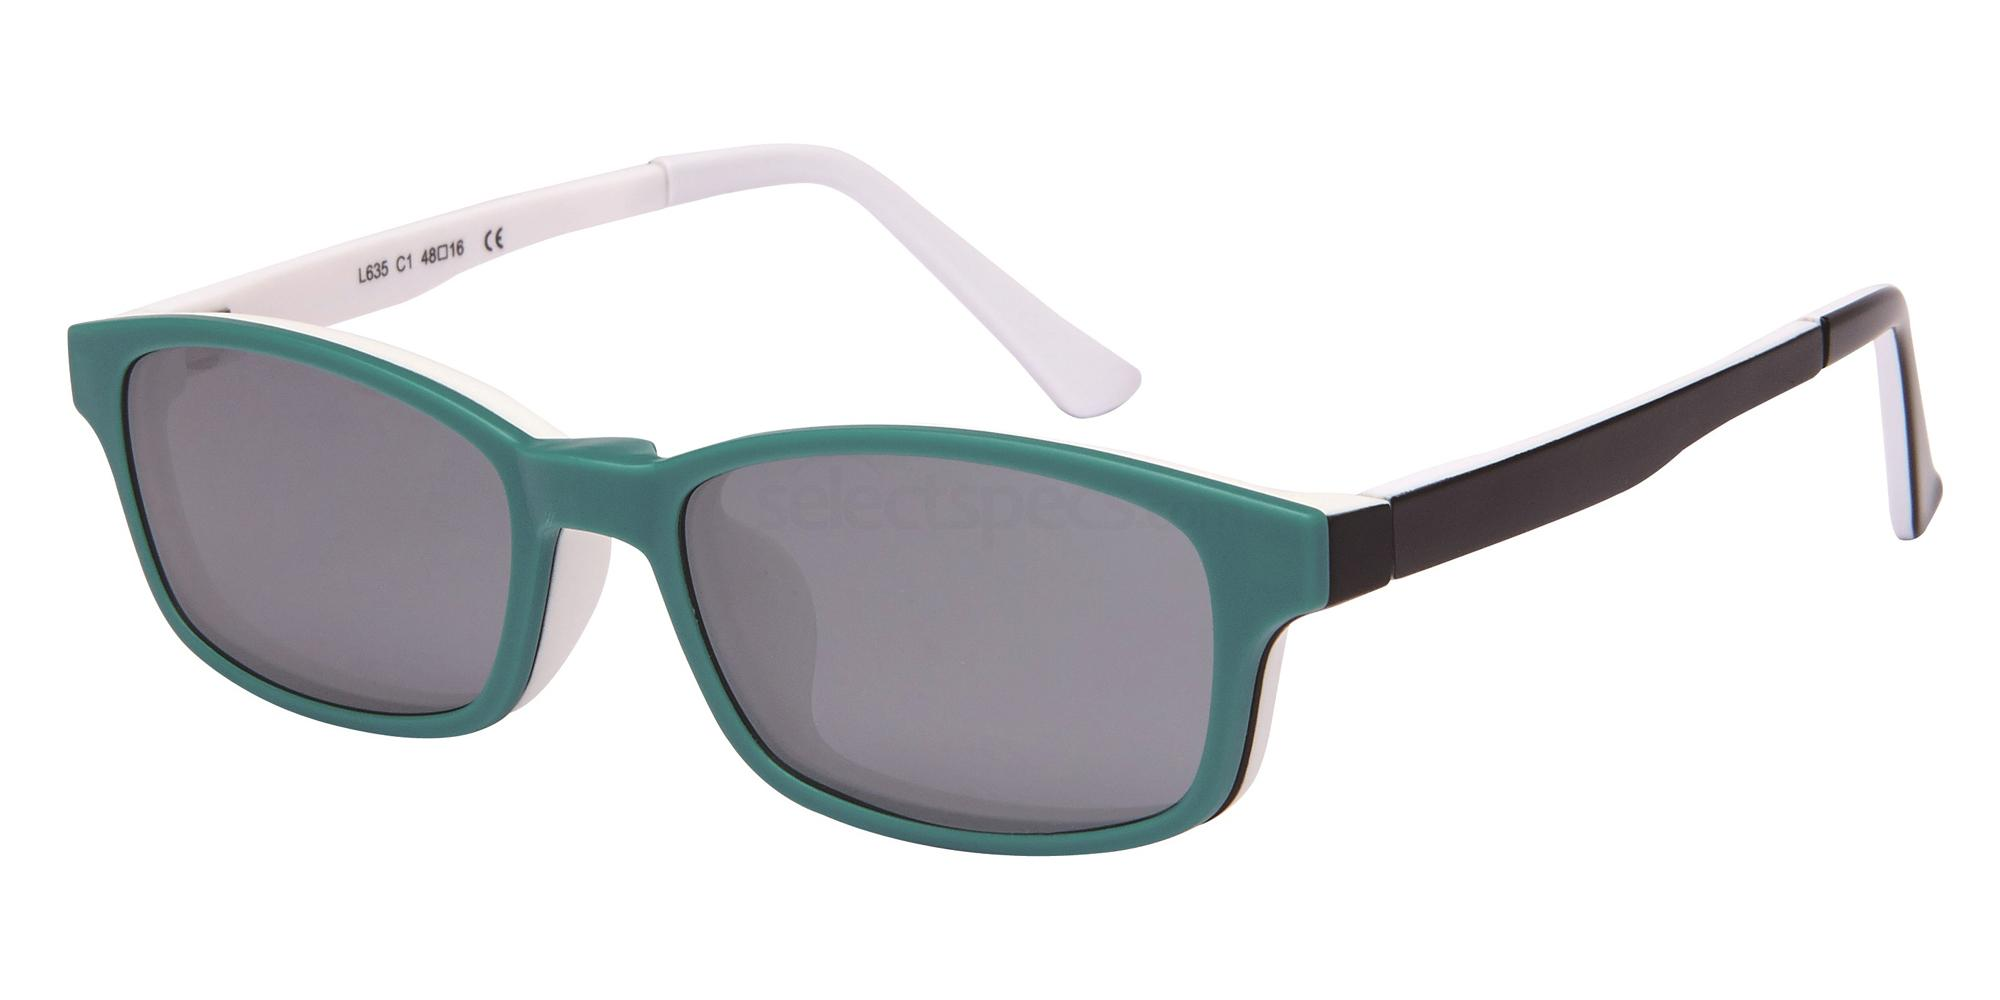 C1 L 635 - With Clip on Glasses, Loox